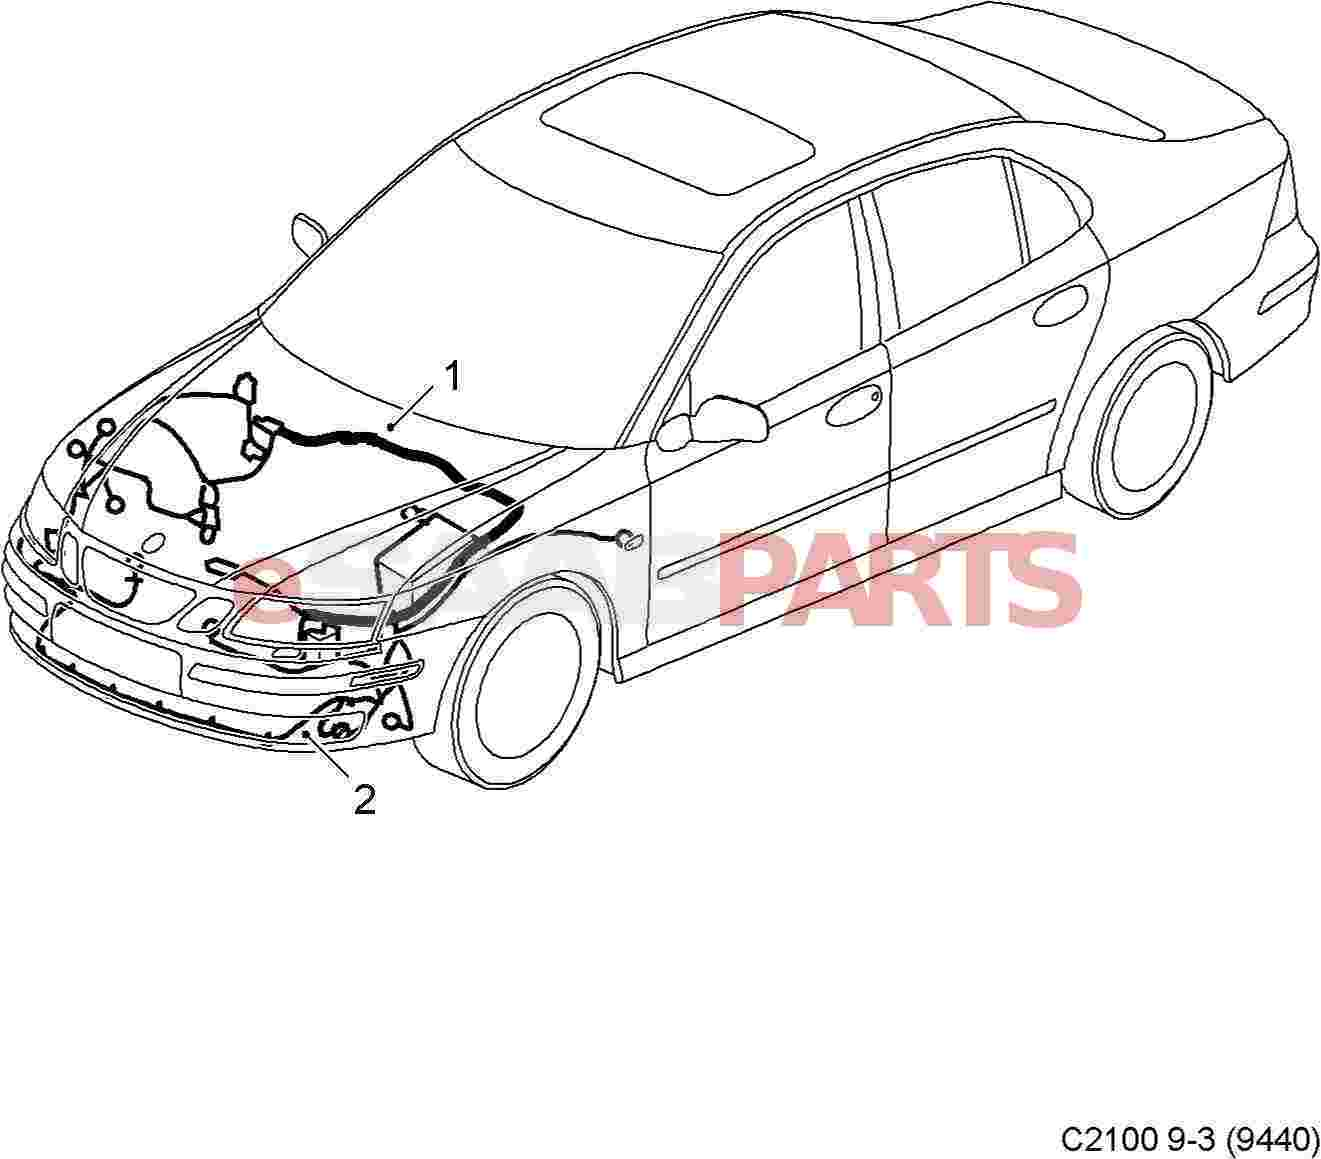 Saab Wiring Harness Diagrams Car Crimper 12844568 Body Genuine Parts From Trailer Diagram